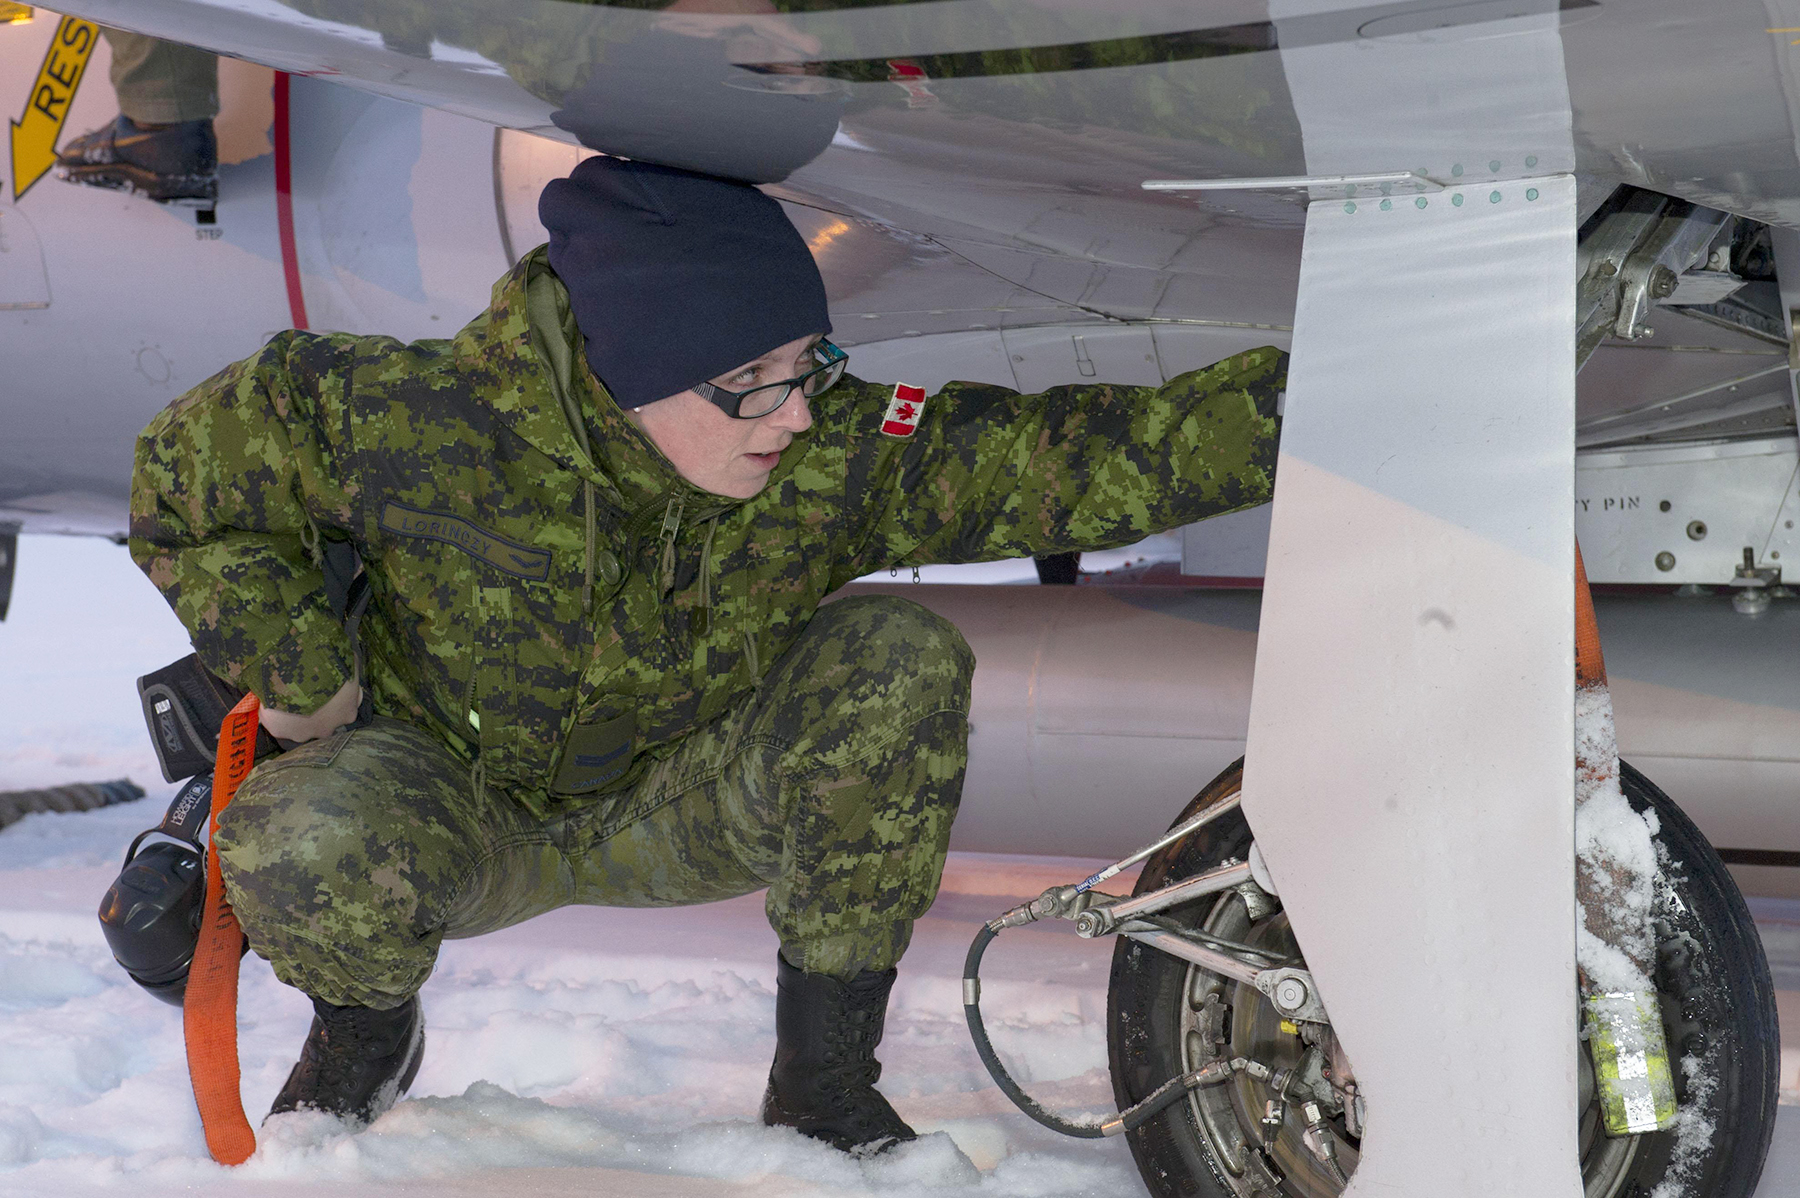 A woman wearing green camouflage clothing, black boots and a dark blue tuque squats by the landing gear of an aircraft and reaches for something.